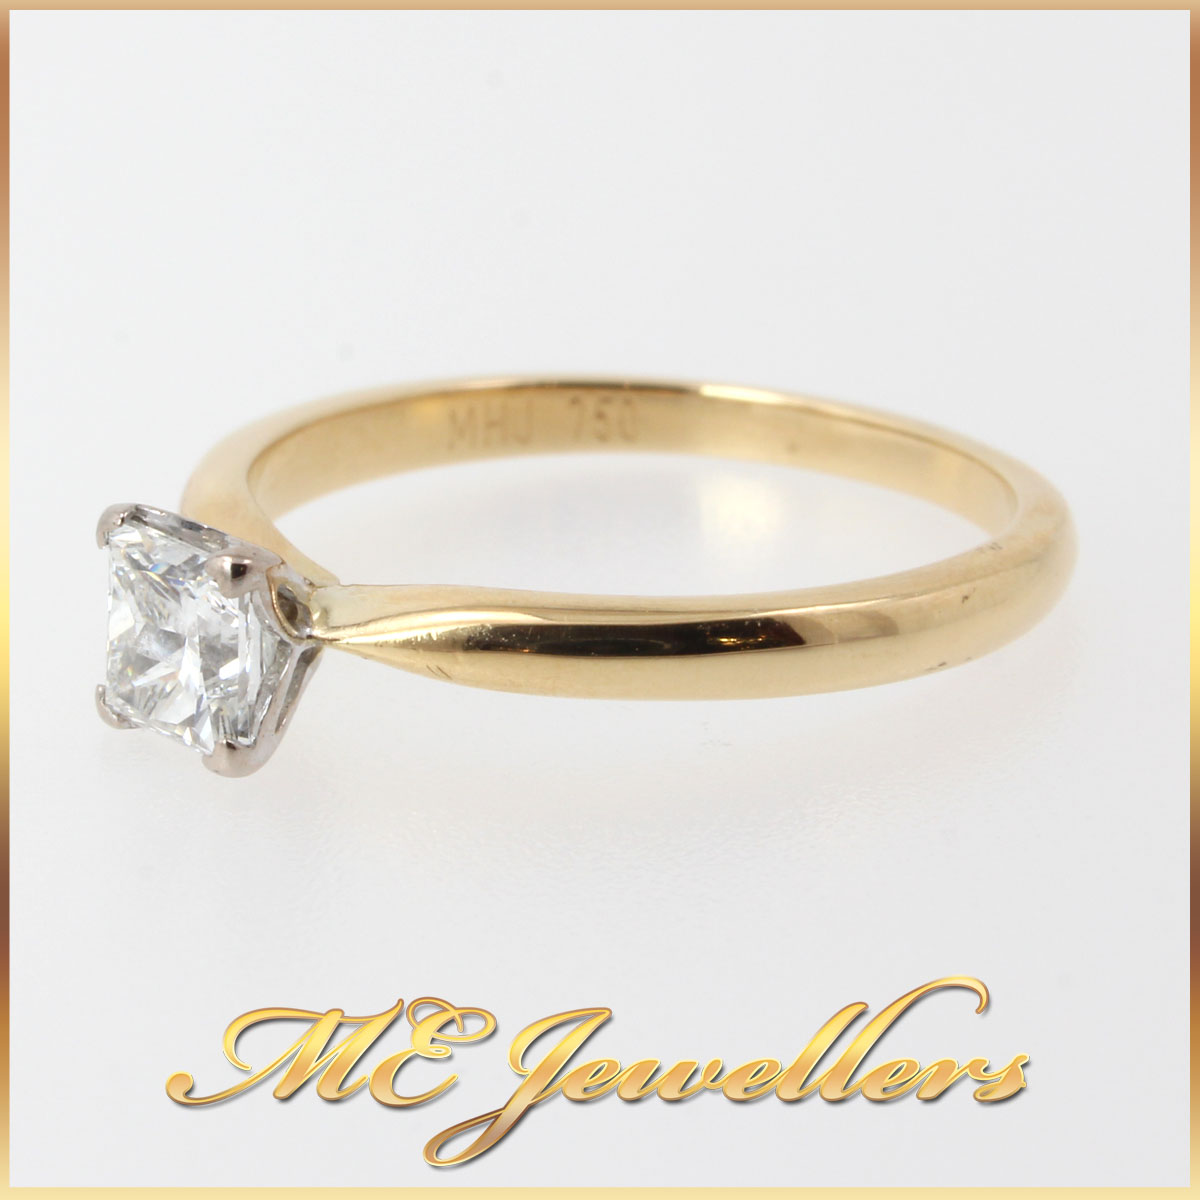 5116_ 0.50ct Princess Cut Diamond Engagement Ring 18k 18ct 750 Yellow Gold Size M (1)